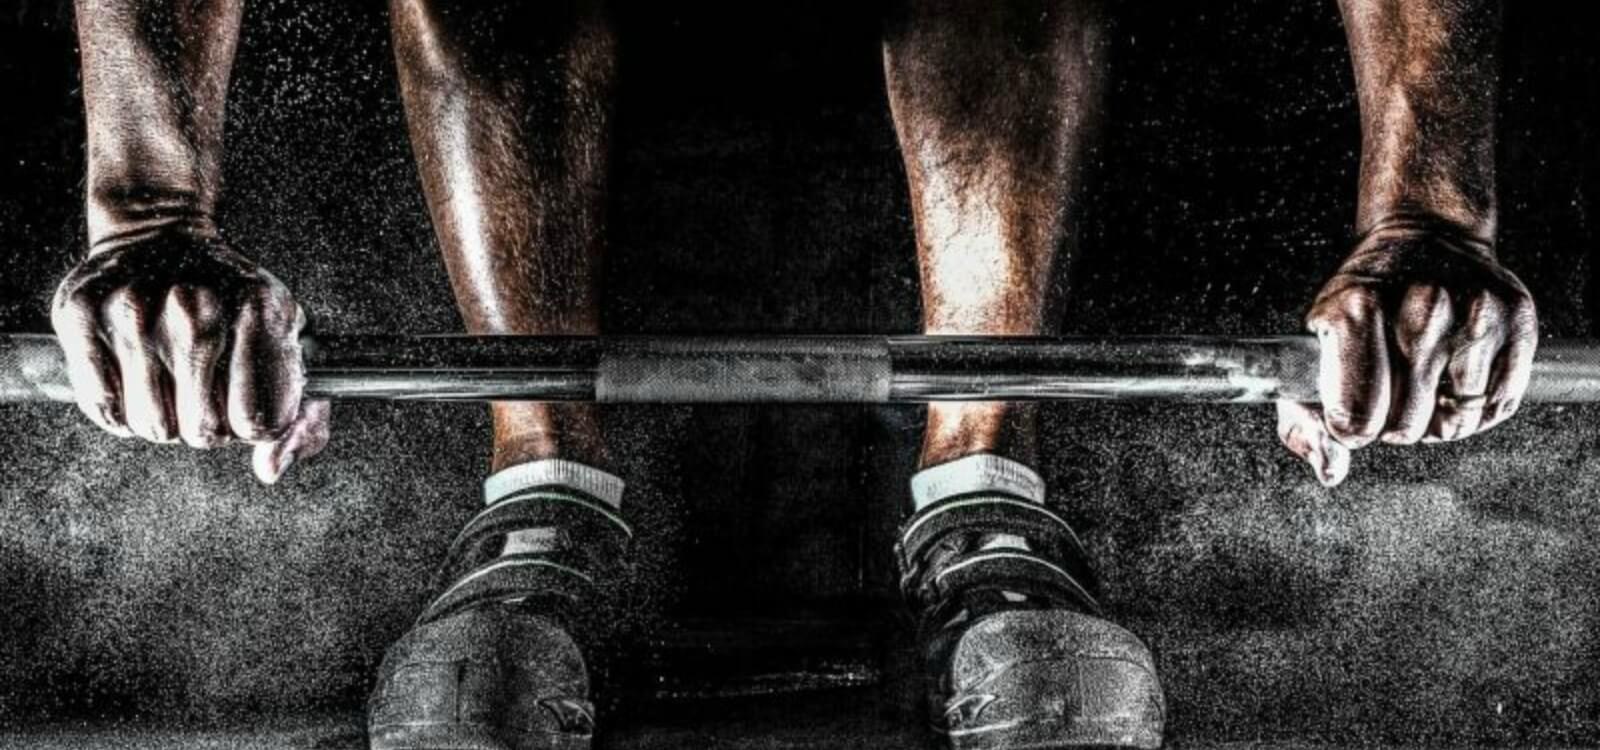 stronglifts strength training